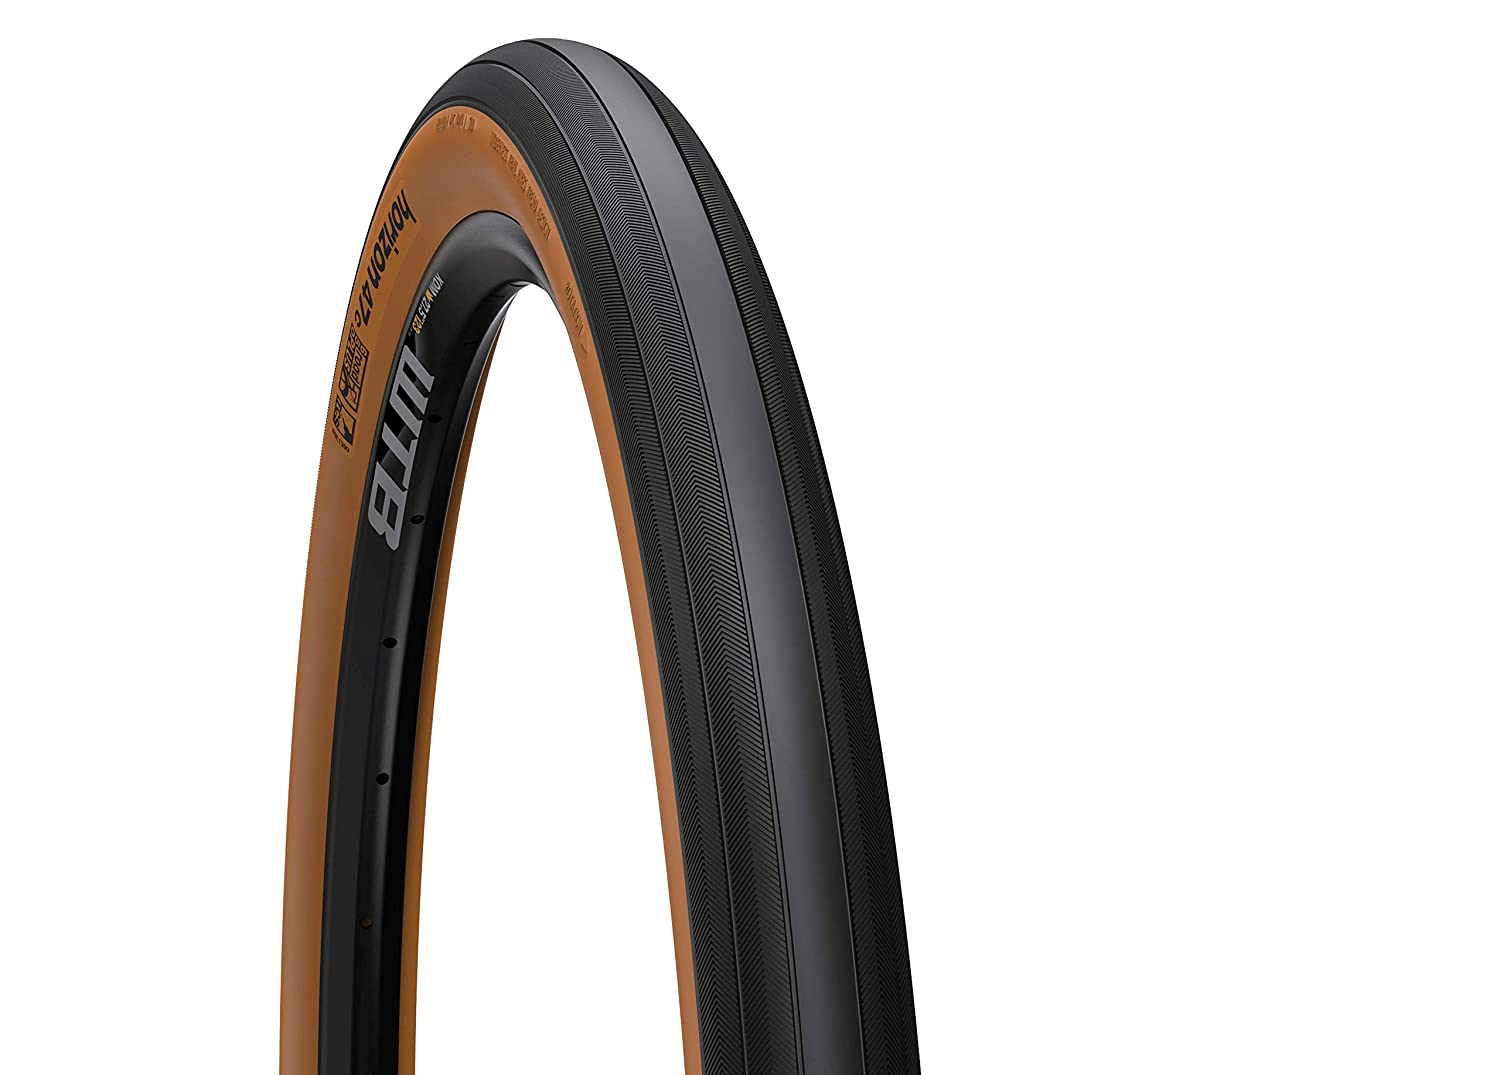 WTB W010-0640 Horizon 650 x 47c Road TCS Tire, 27.5 by WTB